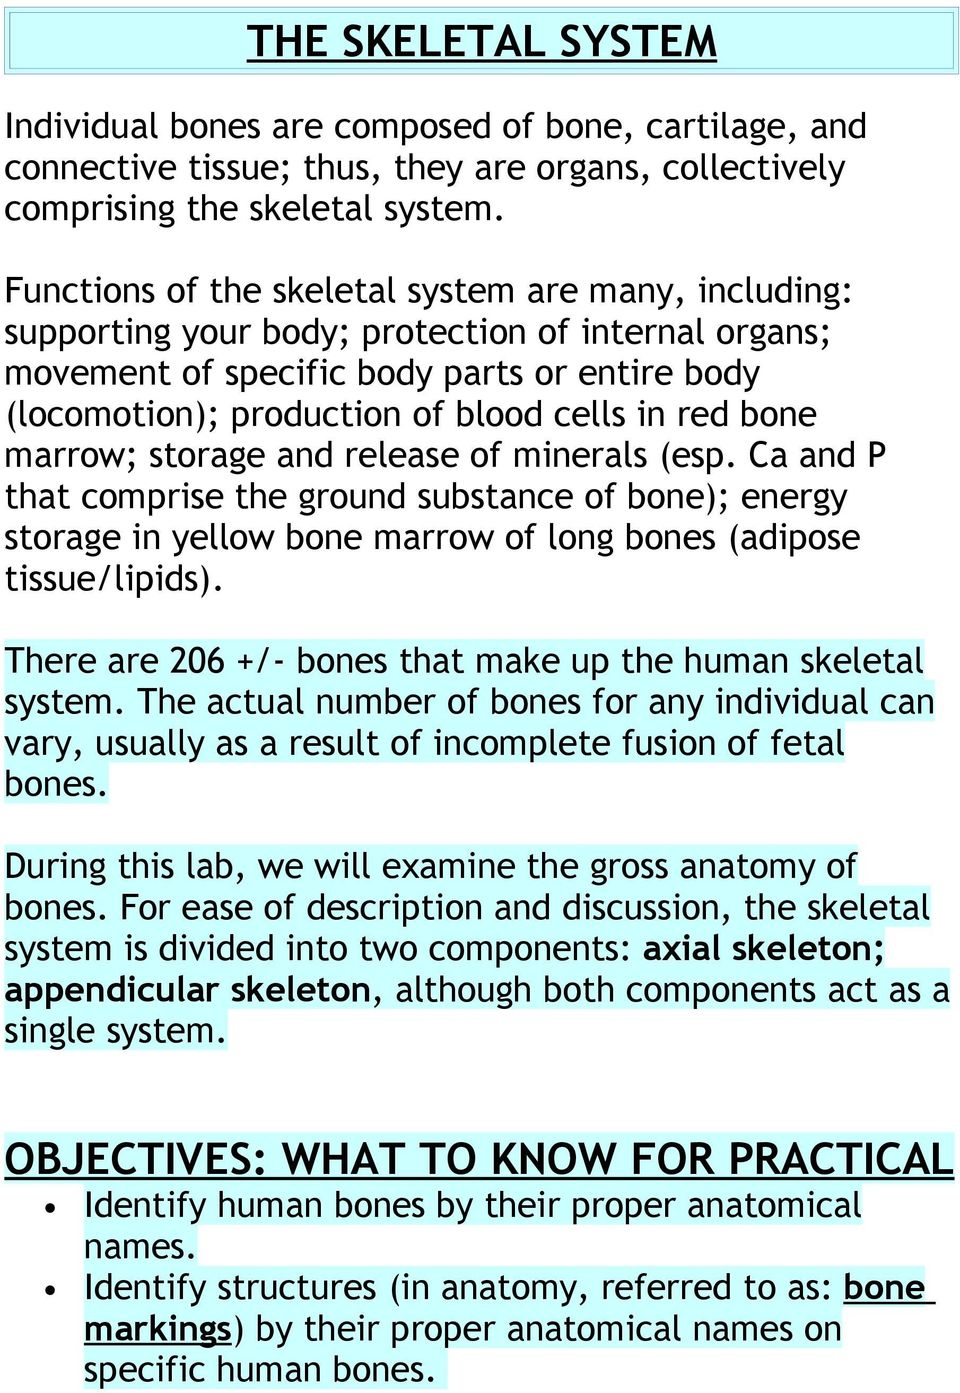 red bone marrow; storage and release of minerals (esp. Ca and P that comprise the ground substance of bone); energy storage in yellow bone marrow of long bones (adipose tissue/lipids).